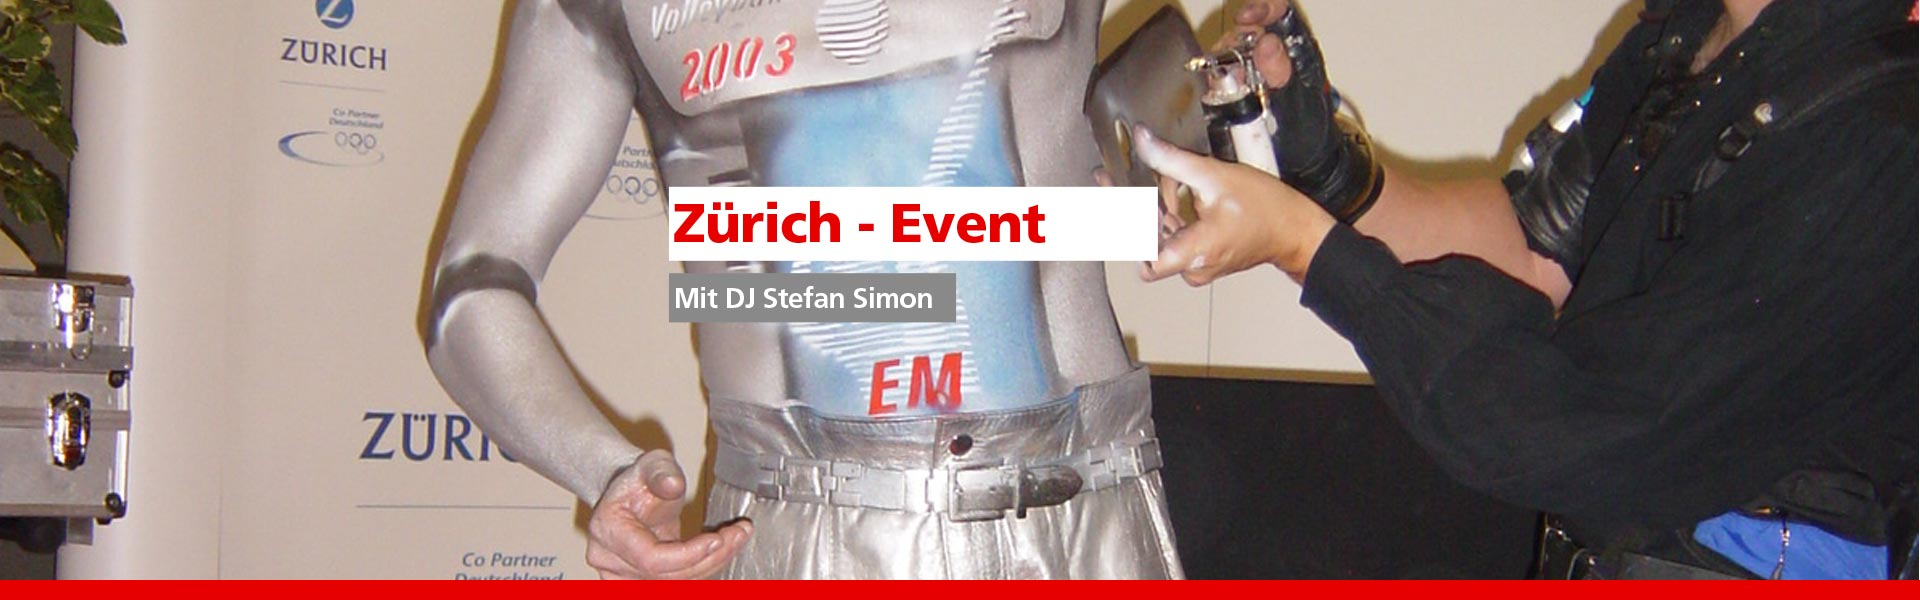 https://www.simonevents.de/wp-content/uploads/2014/02/Slider_1920x600px_Events-NEU-2.jpg